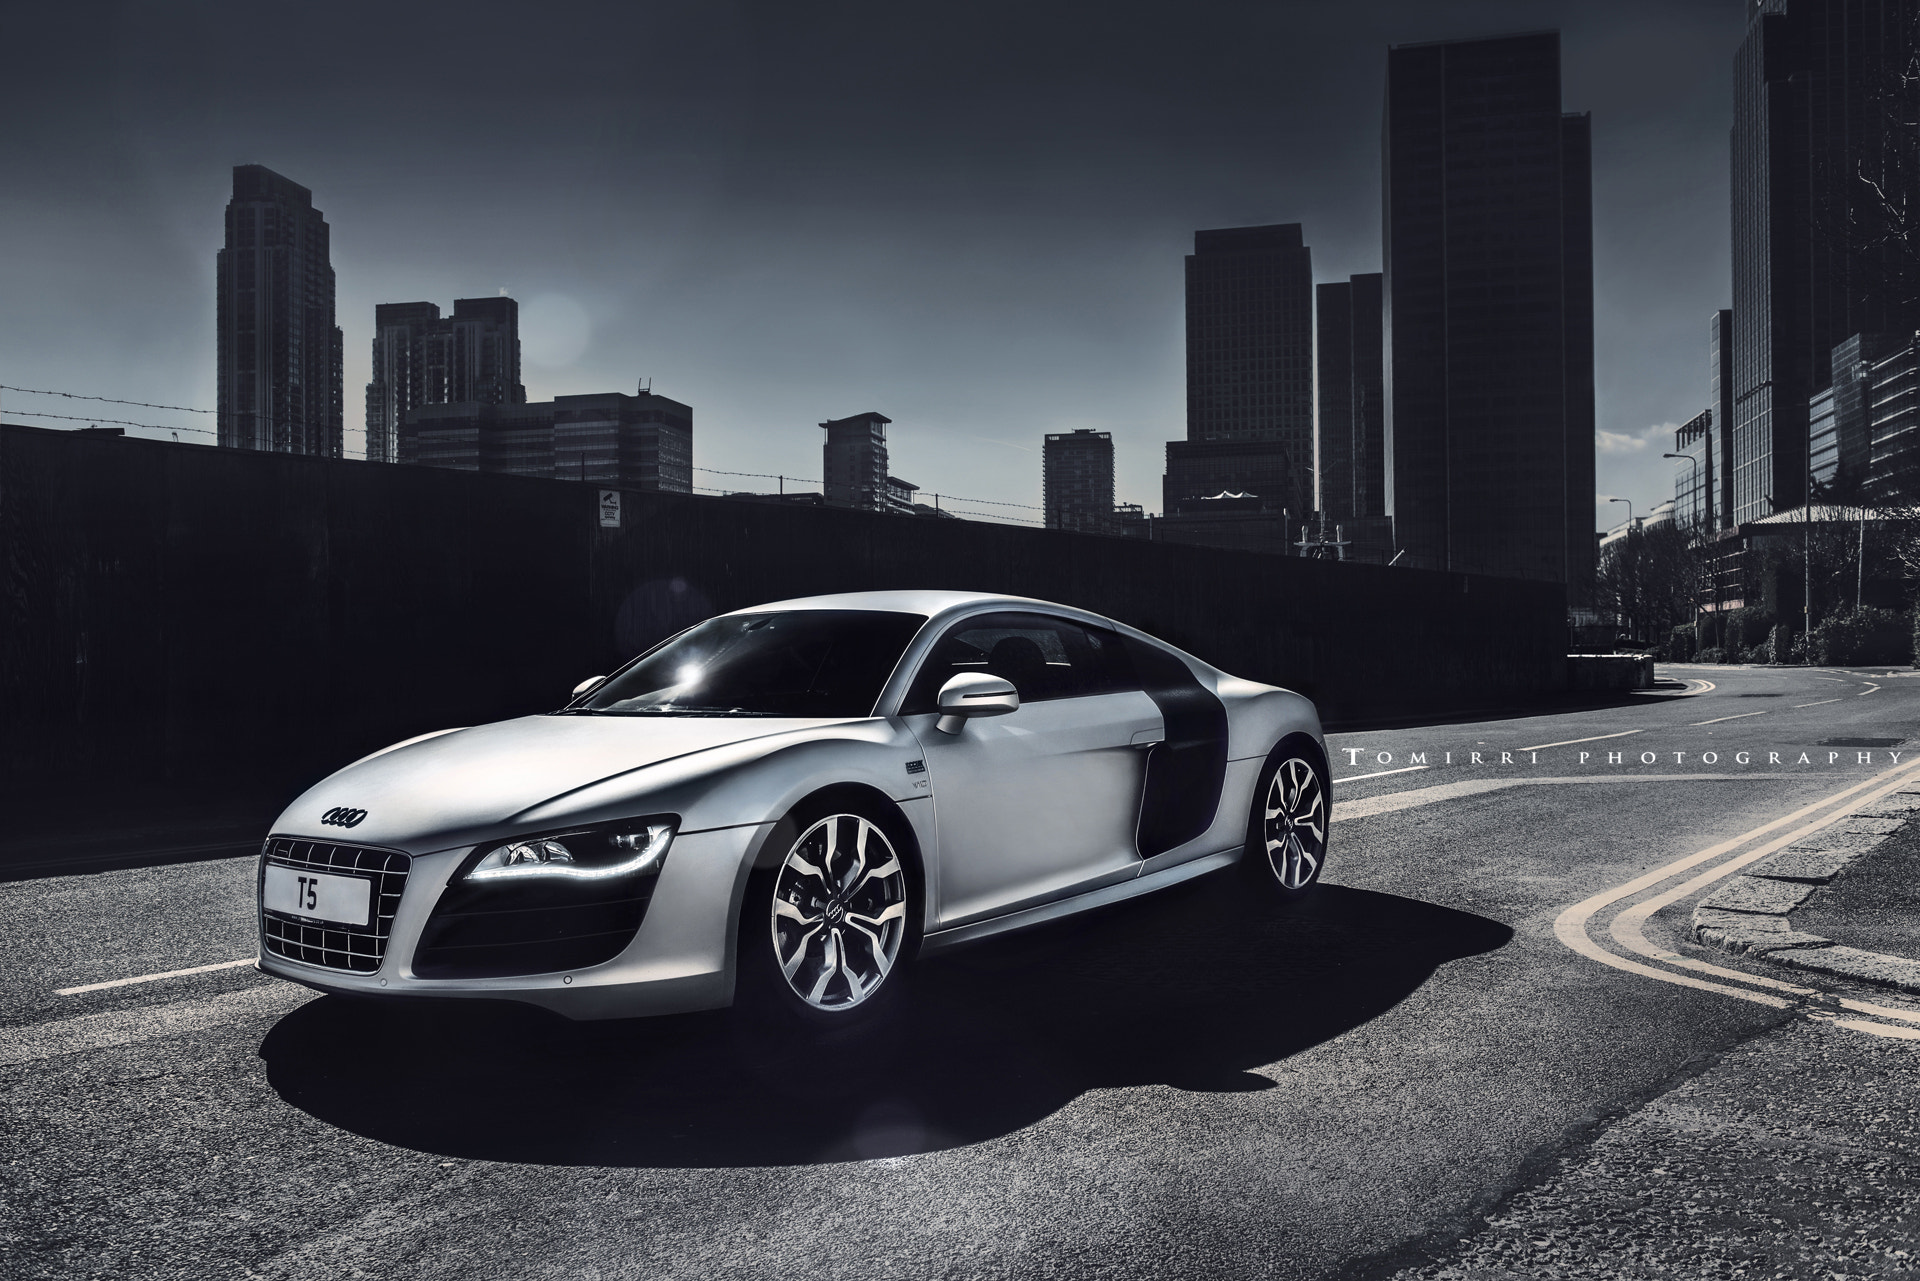 Photograph Audi R8 V10 by TomirriPhotography  on 500px